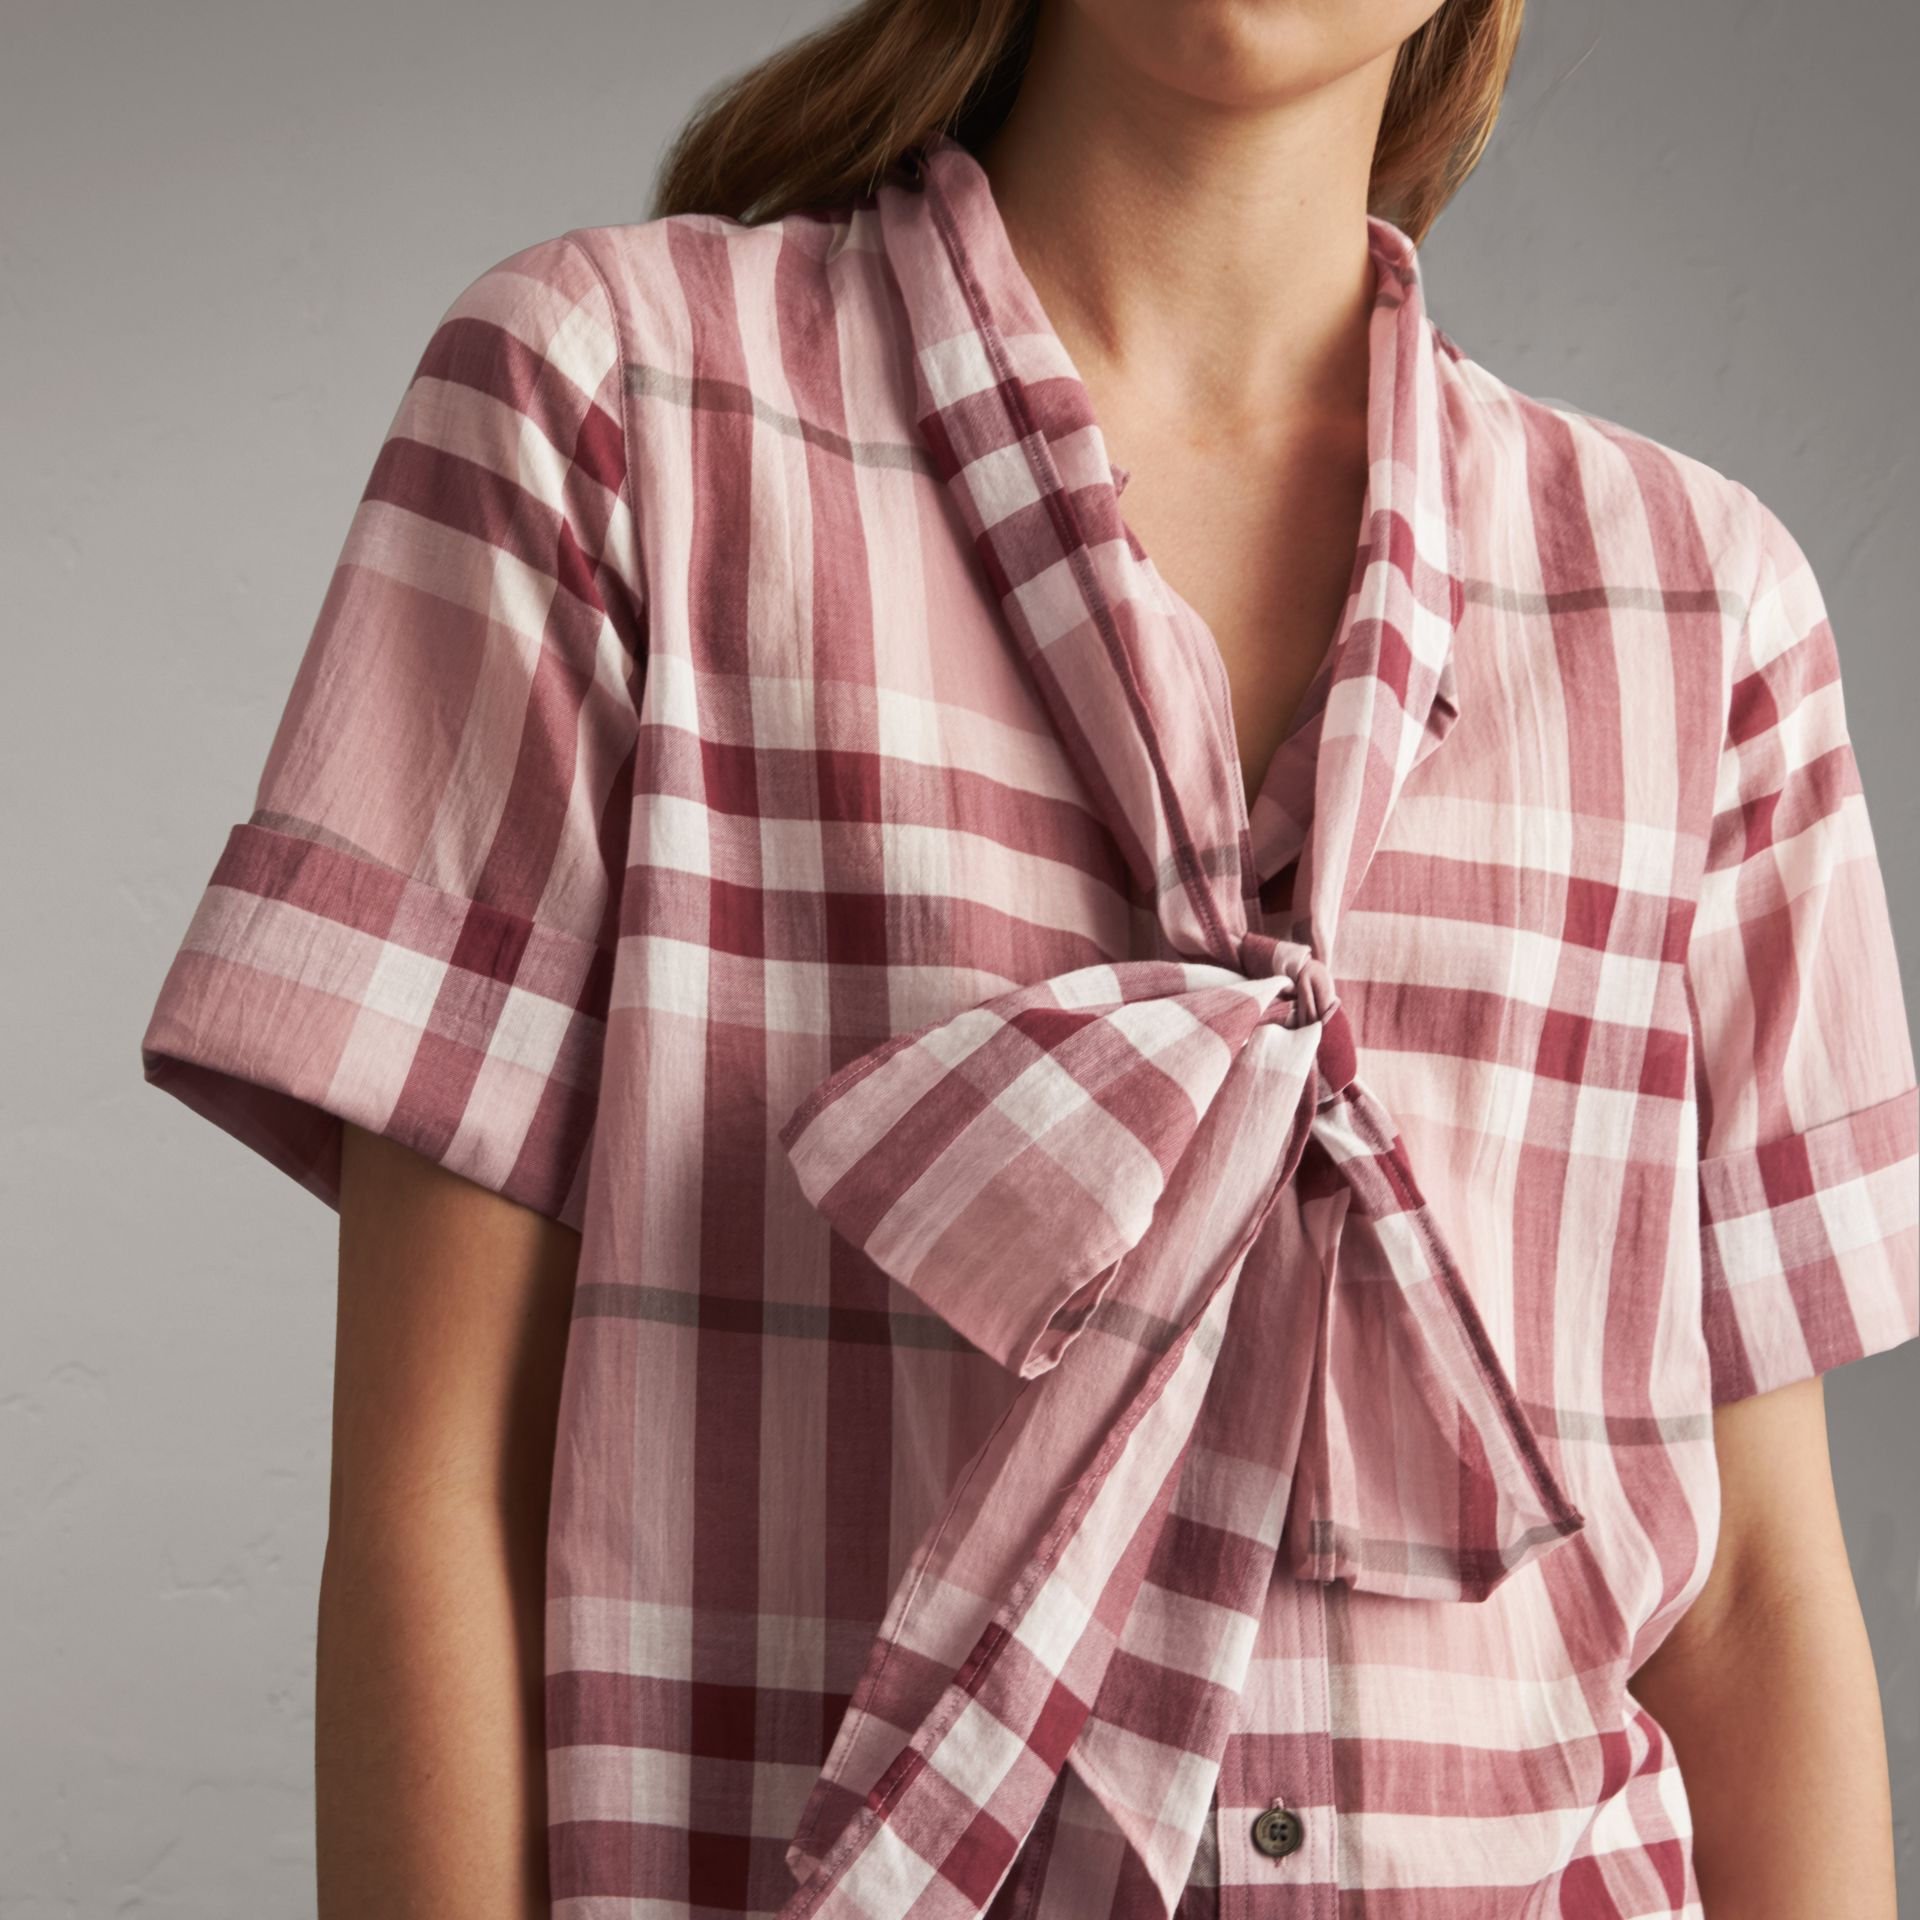 Short-sleeve Check Cotton Tie Neck Shirt in Antique Pink - Women | Burberry - gallery image 5